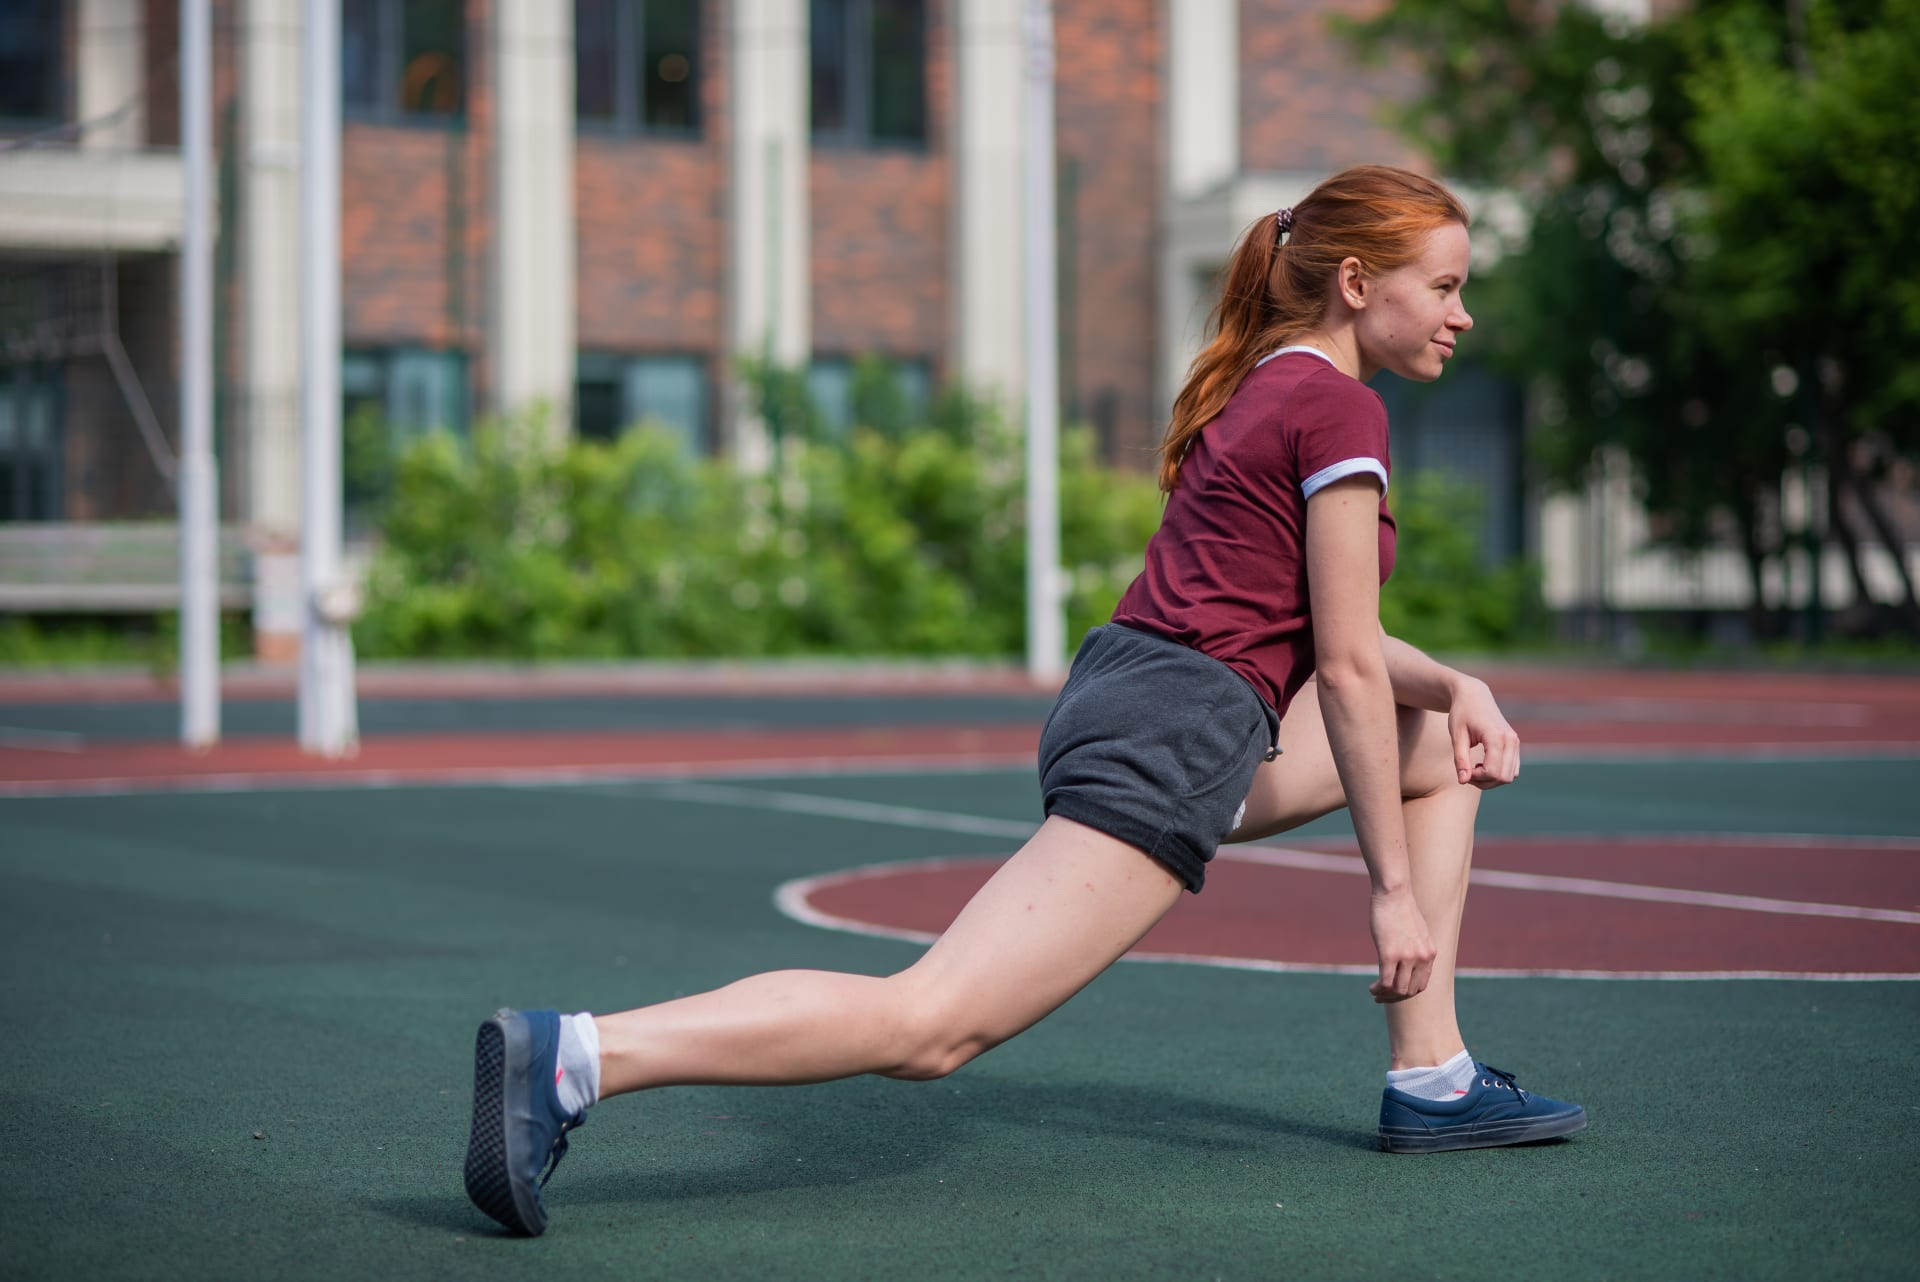 Girl in a lunge position on a basketball field